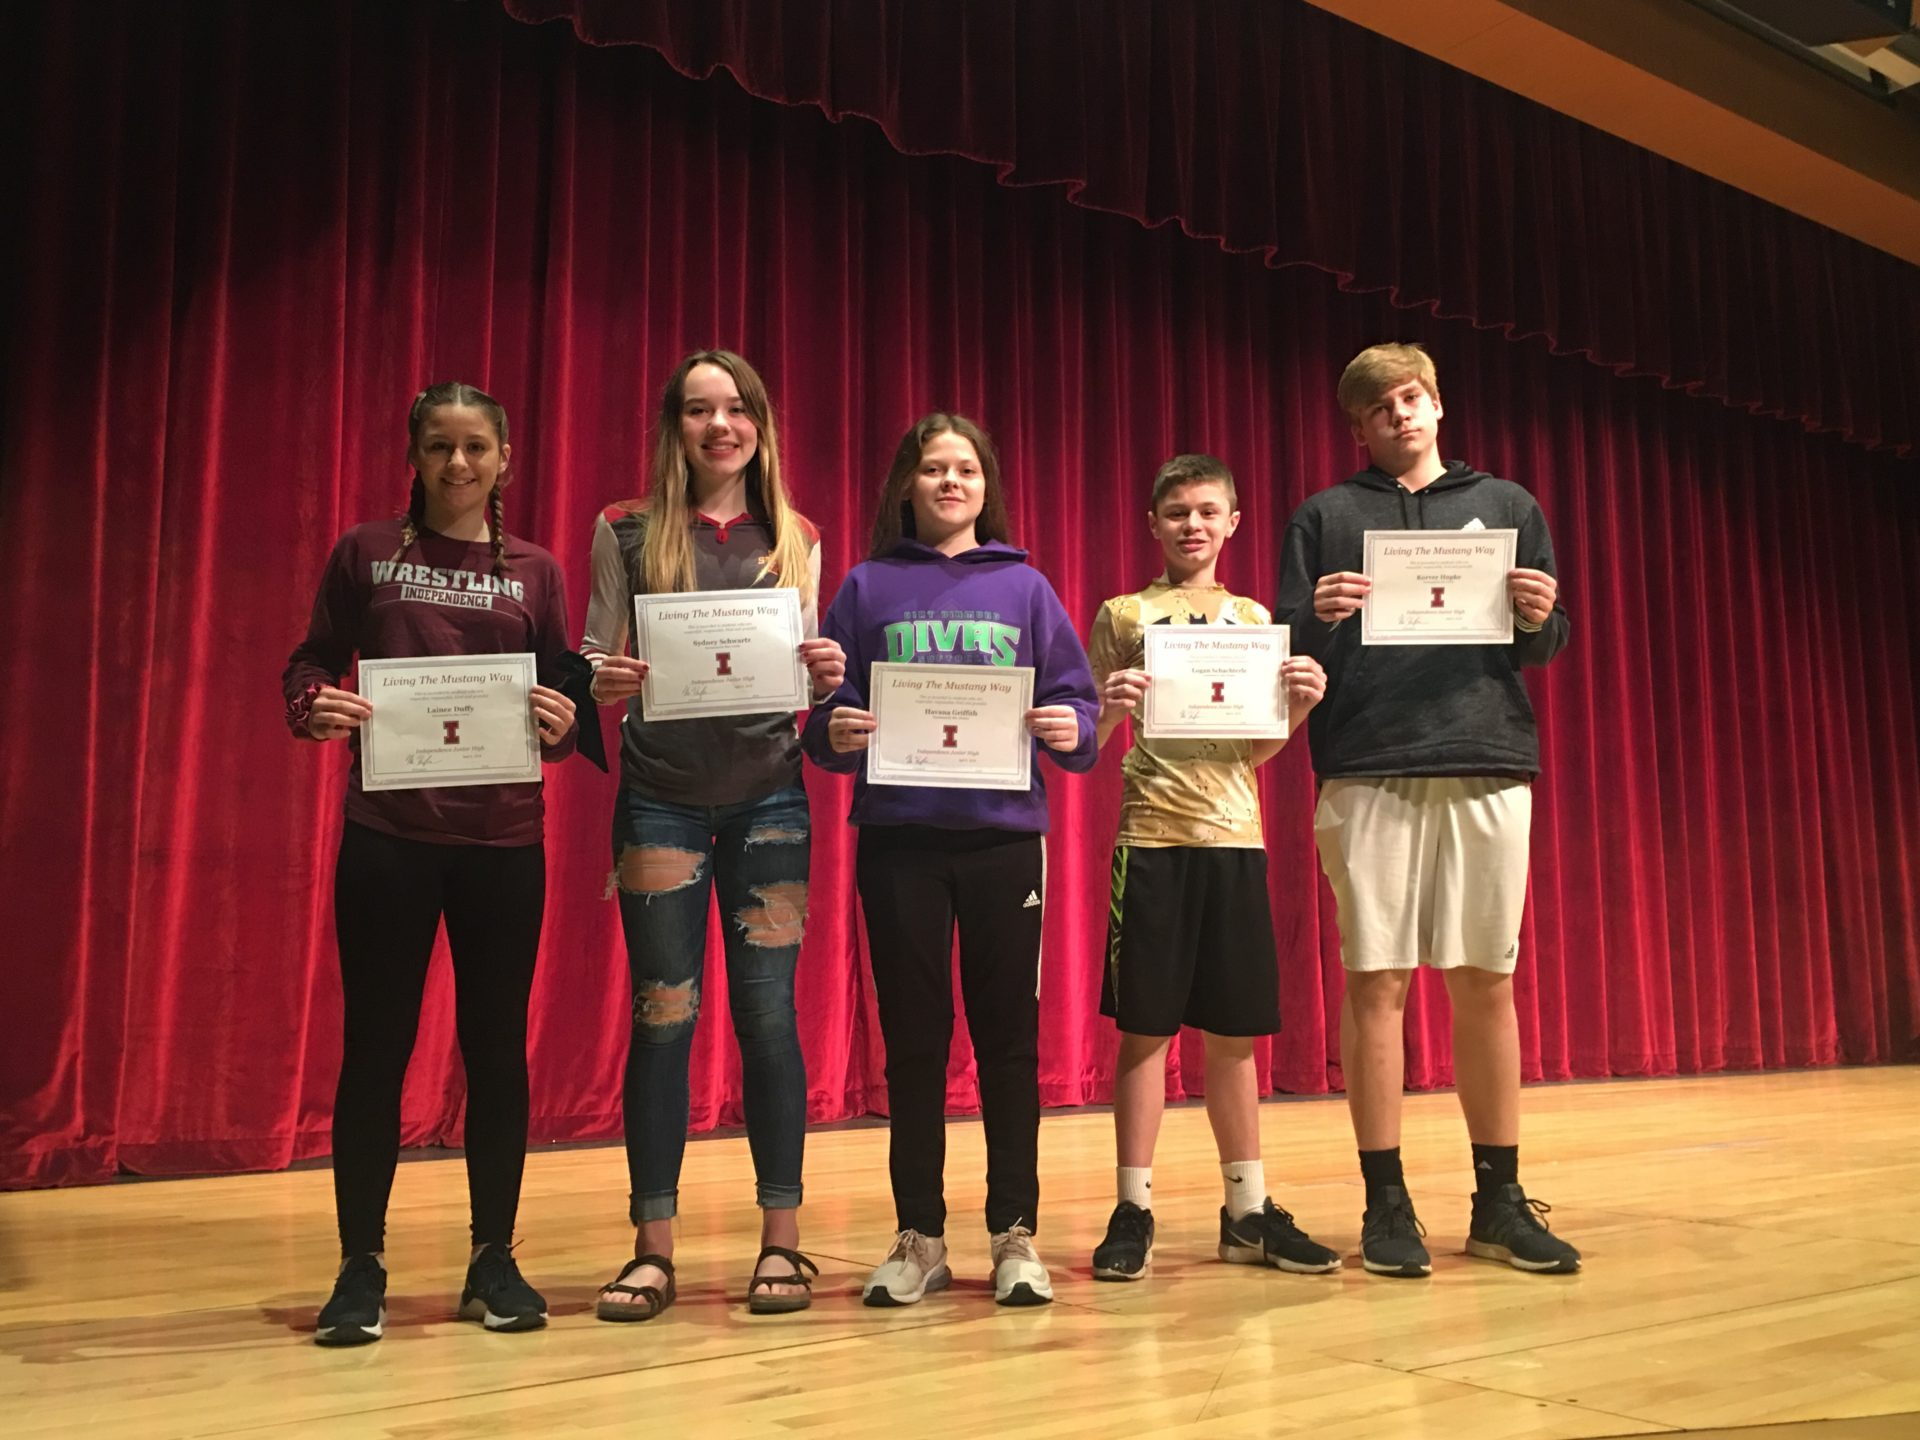 Junior High students showcase their awards